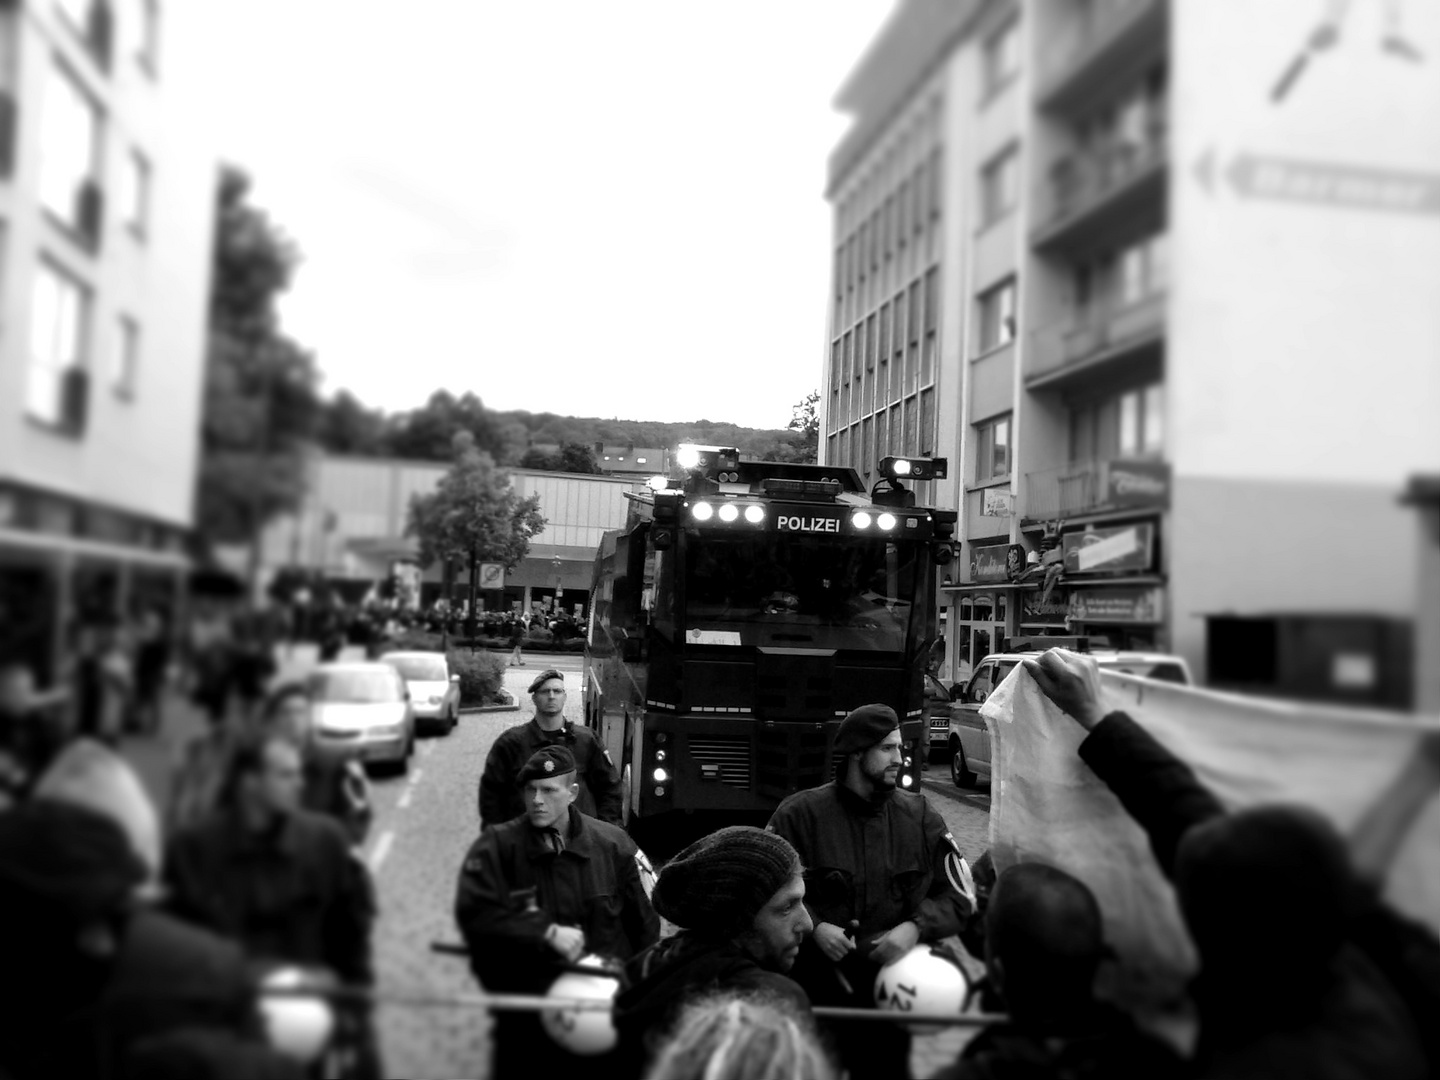 Demo in Wuppertal